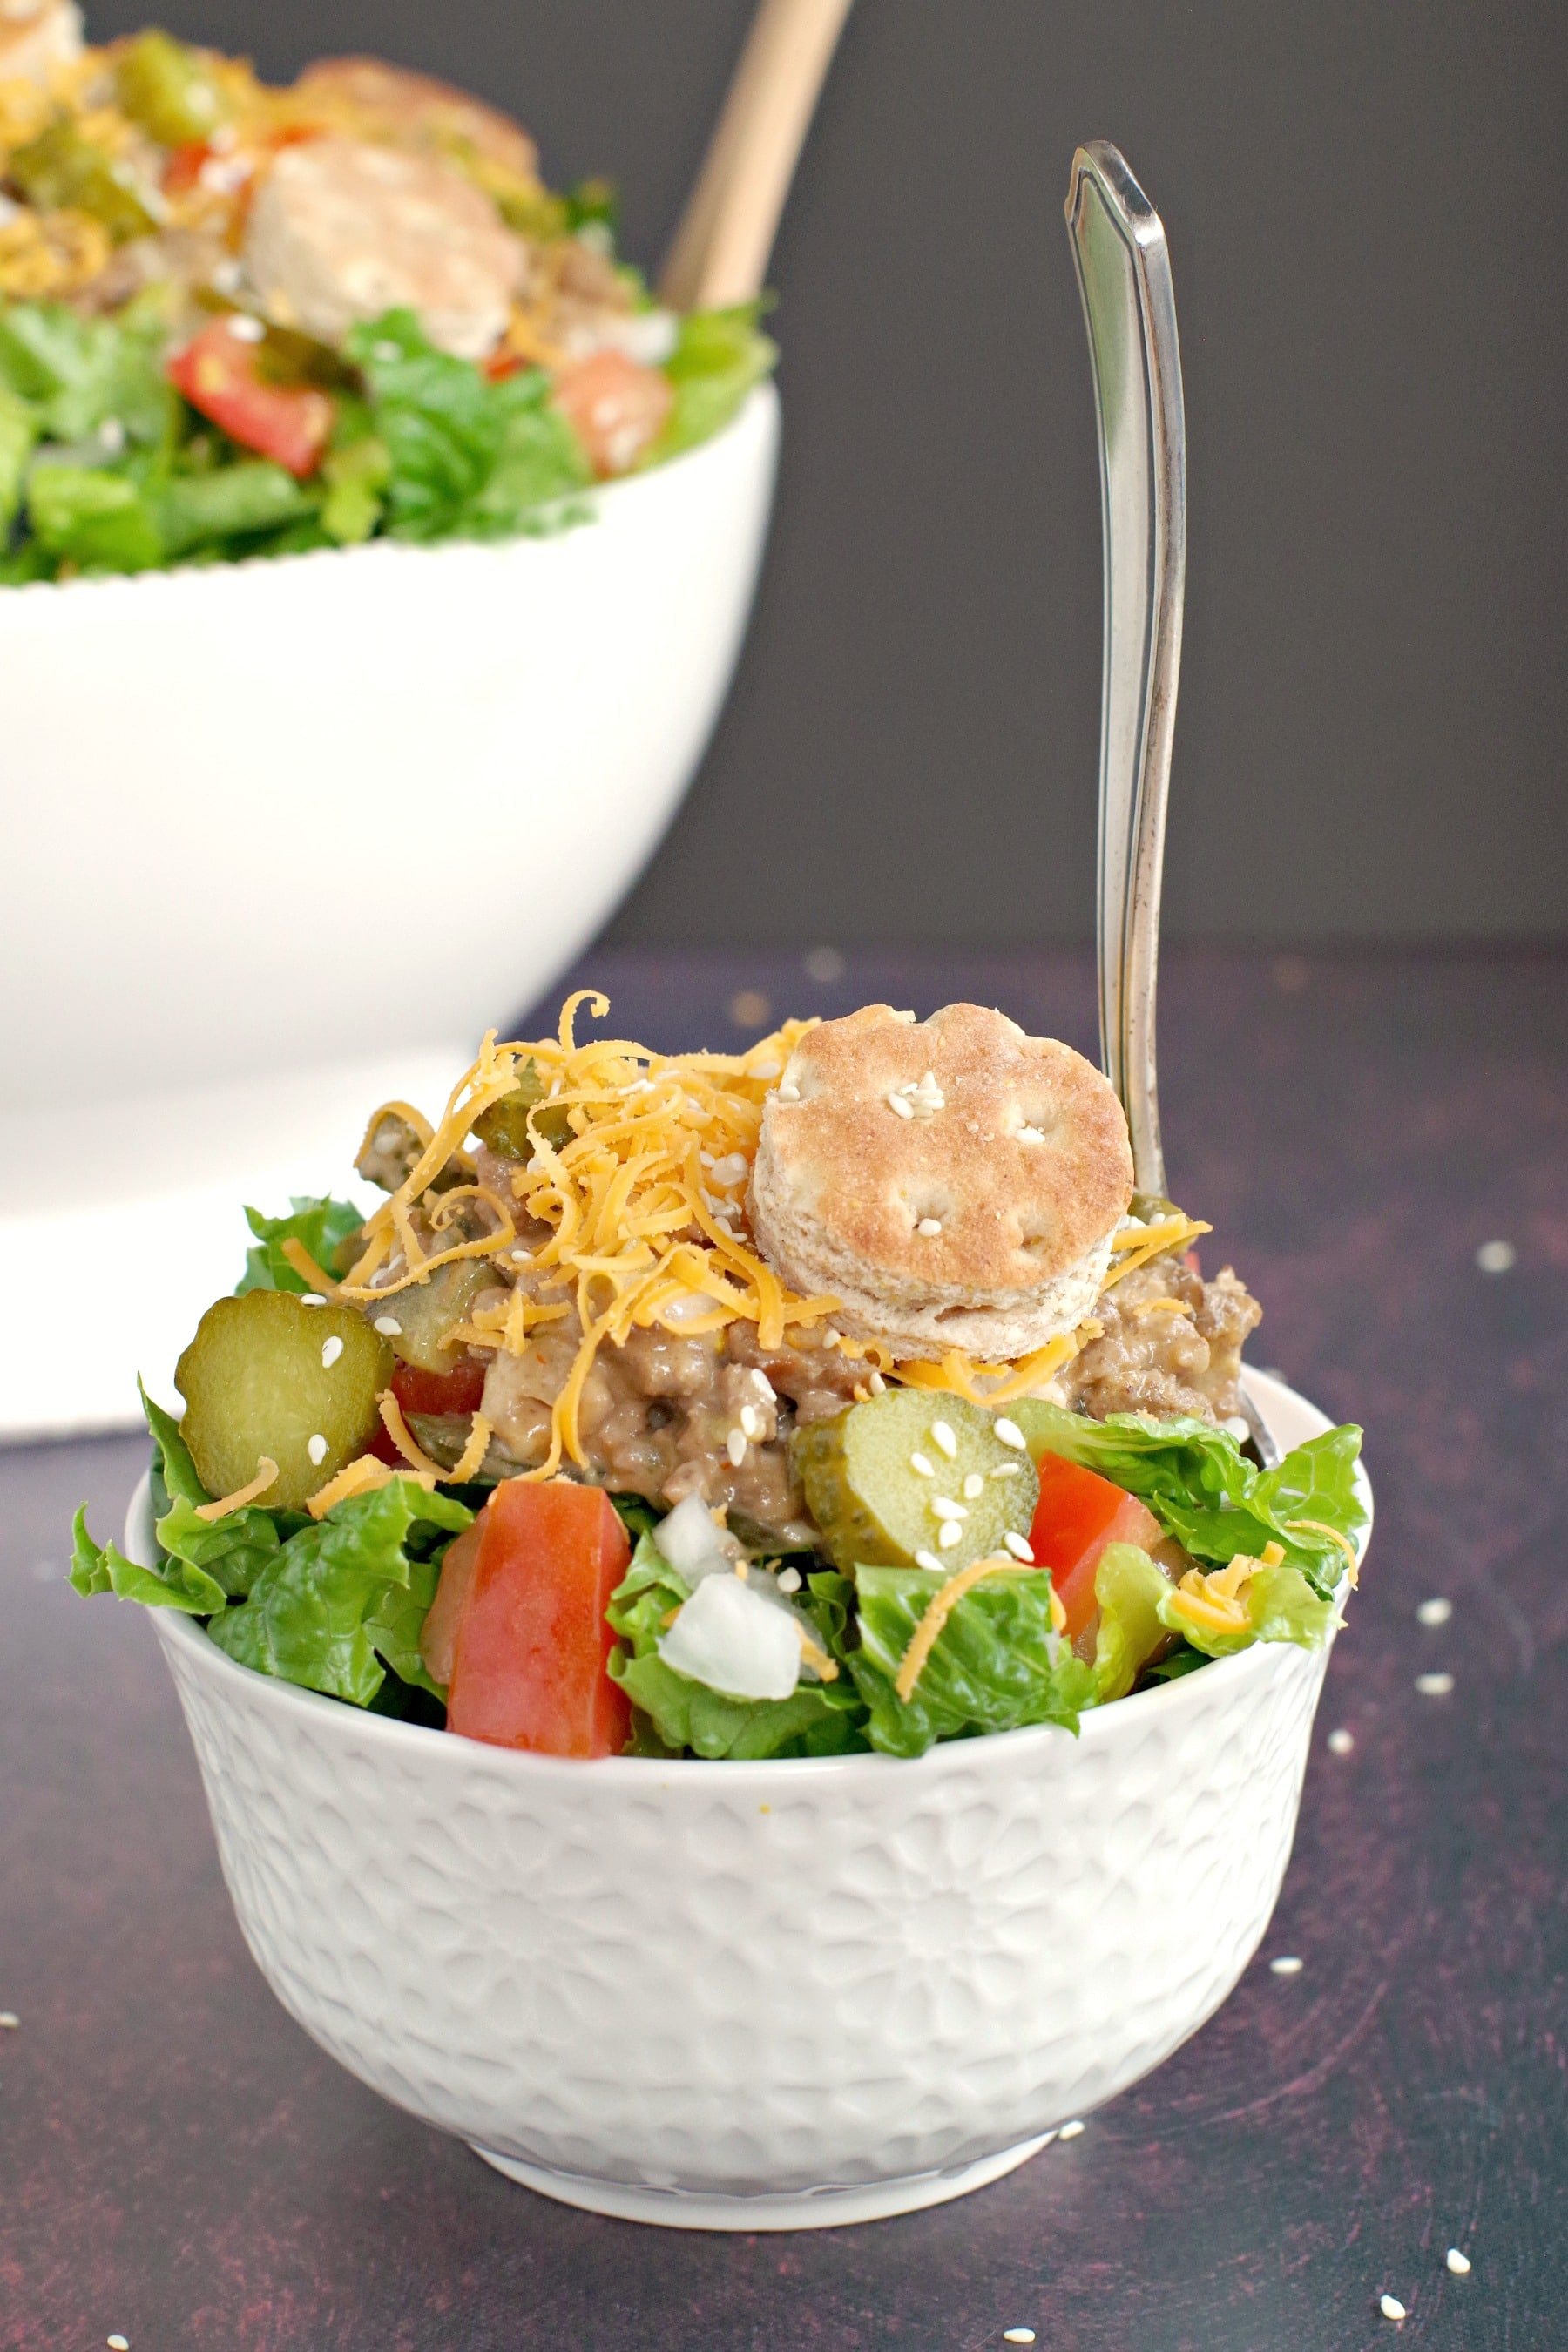 big mac salad in small white bowl with fork in it and large white salad bowl in background